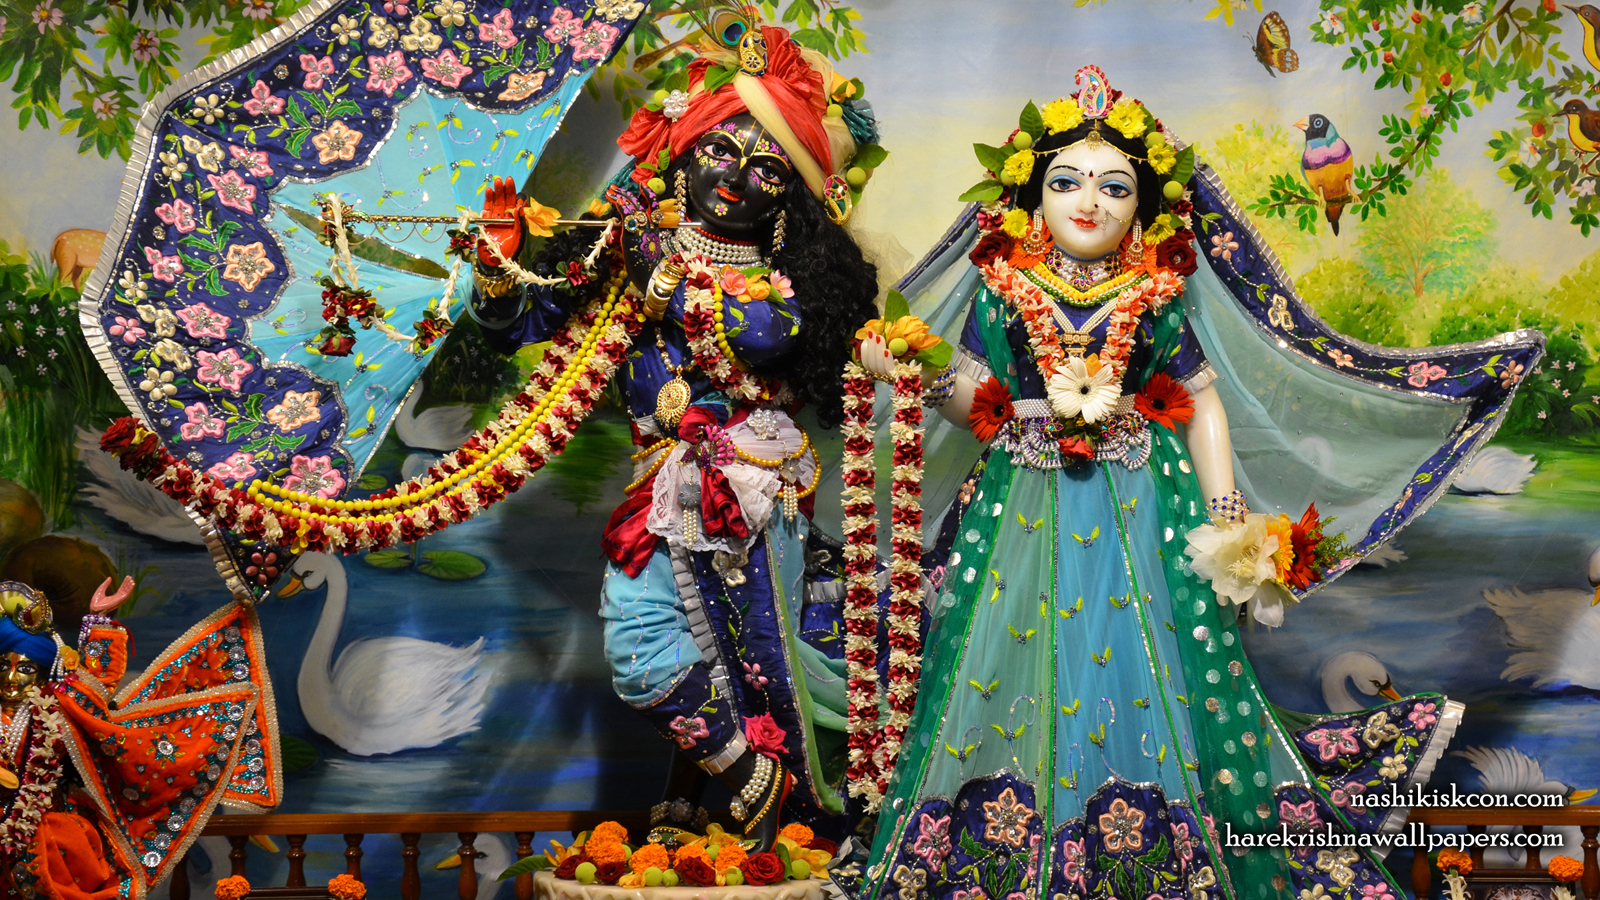 Sri Sri Radha Madan Gopal Wallpaper (007) Size 1600x900 Download